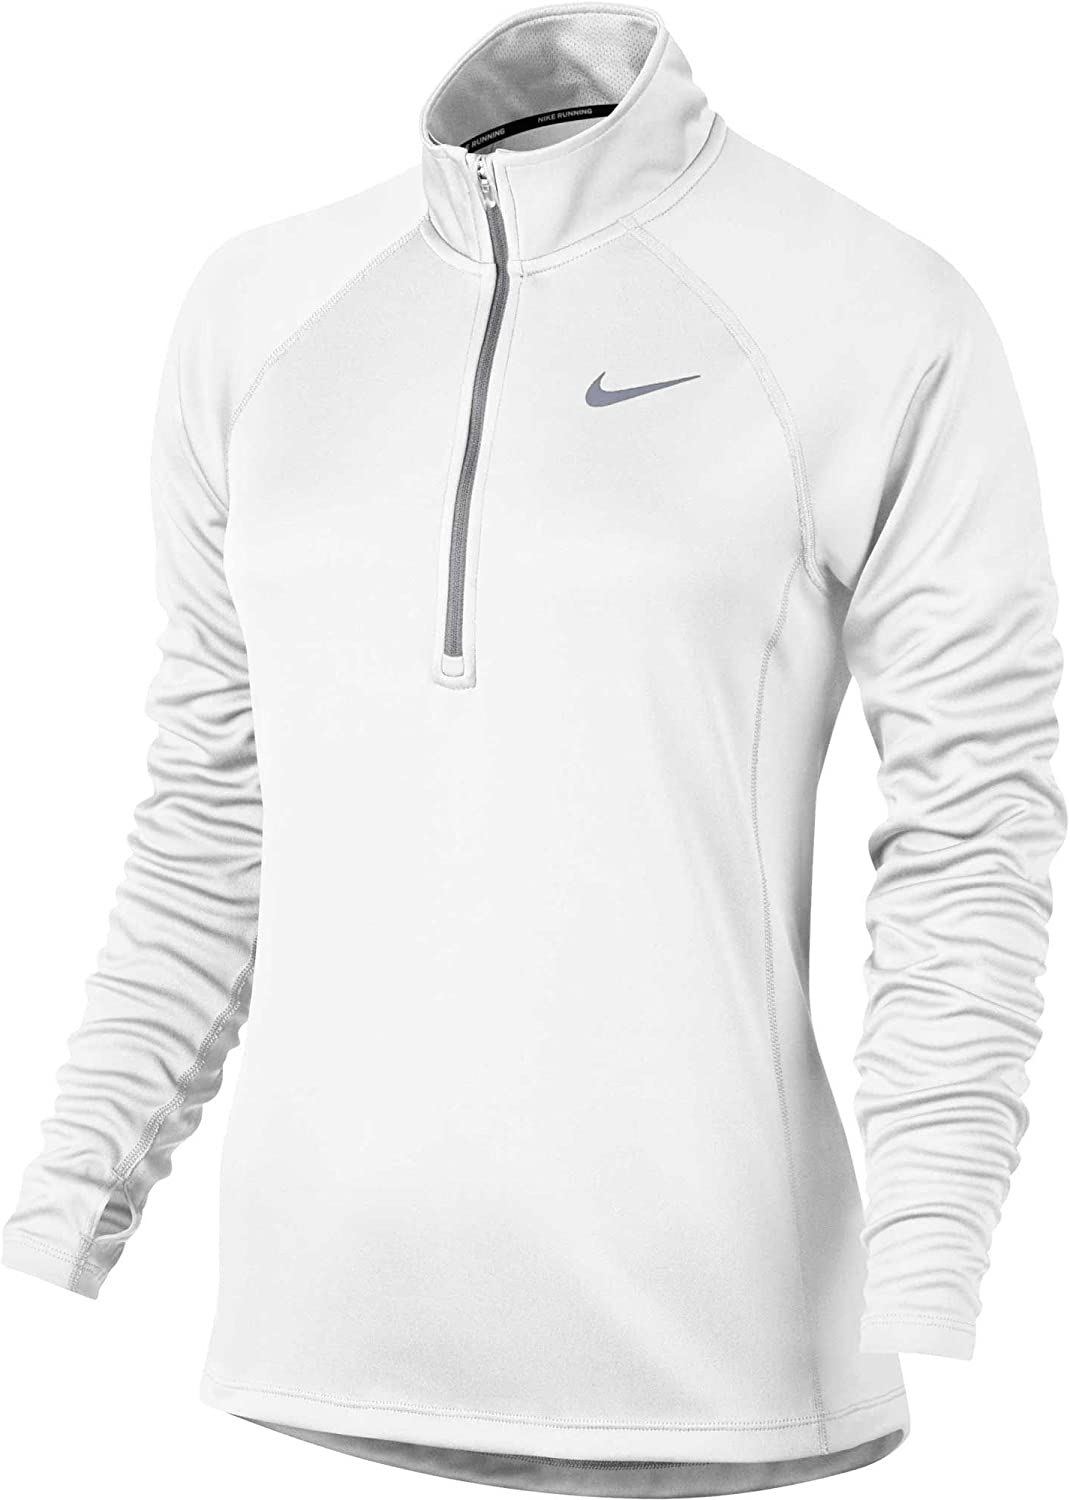 Nike Top Half Zip Womens Shirt